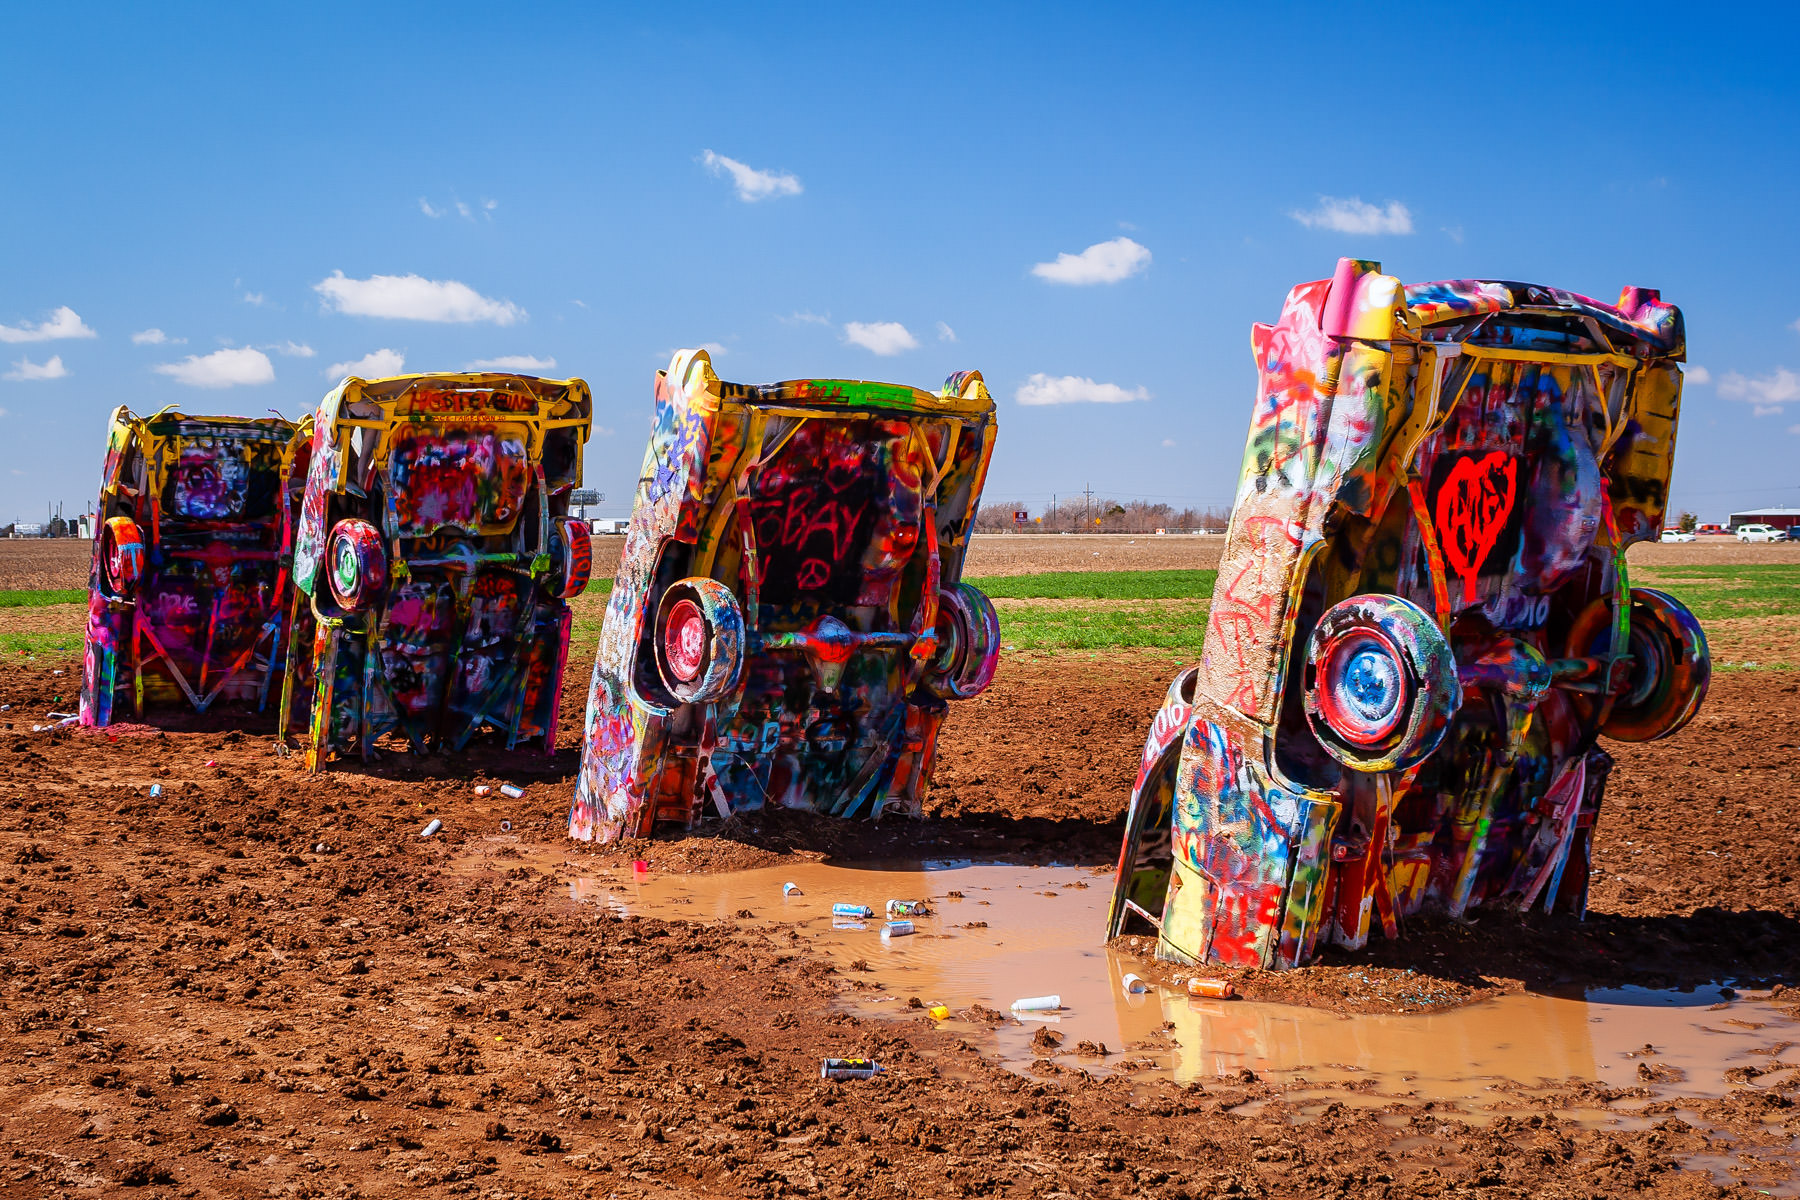 Four of the graffitied cars at Cadillac Ranch, Amarillo, Texas.